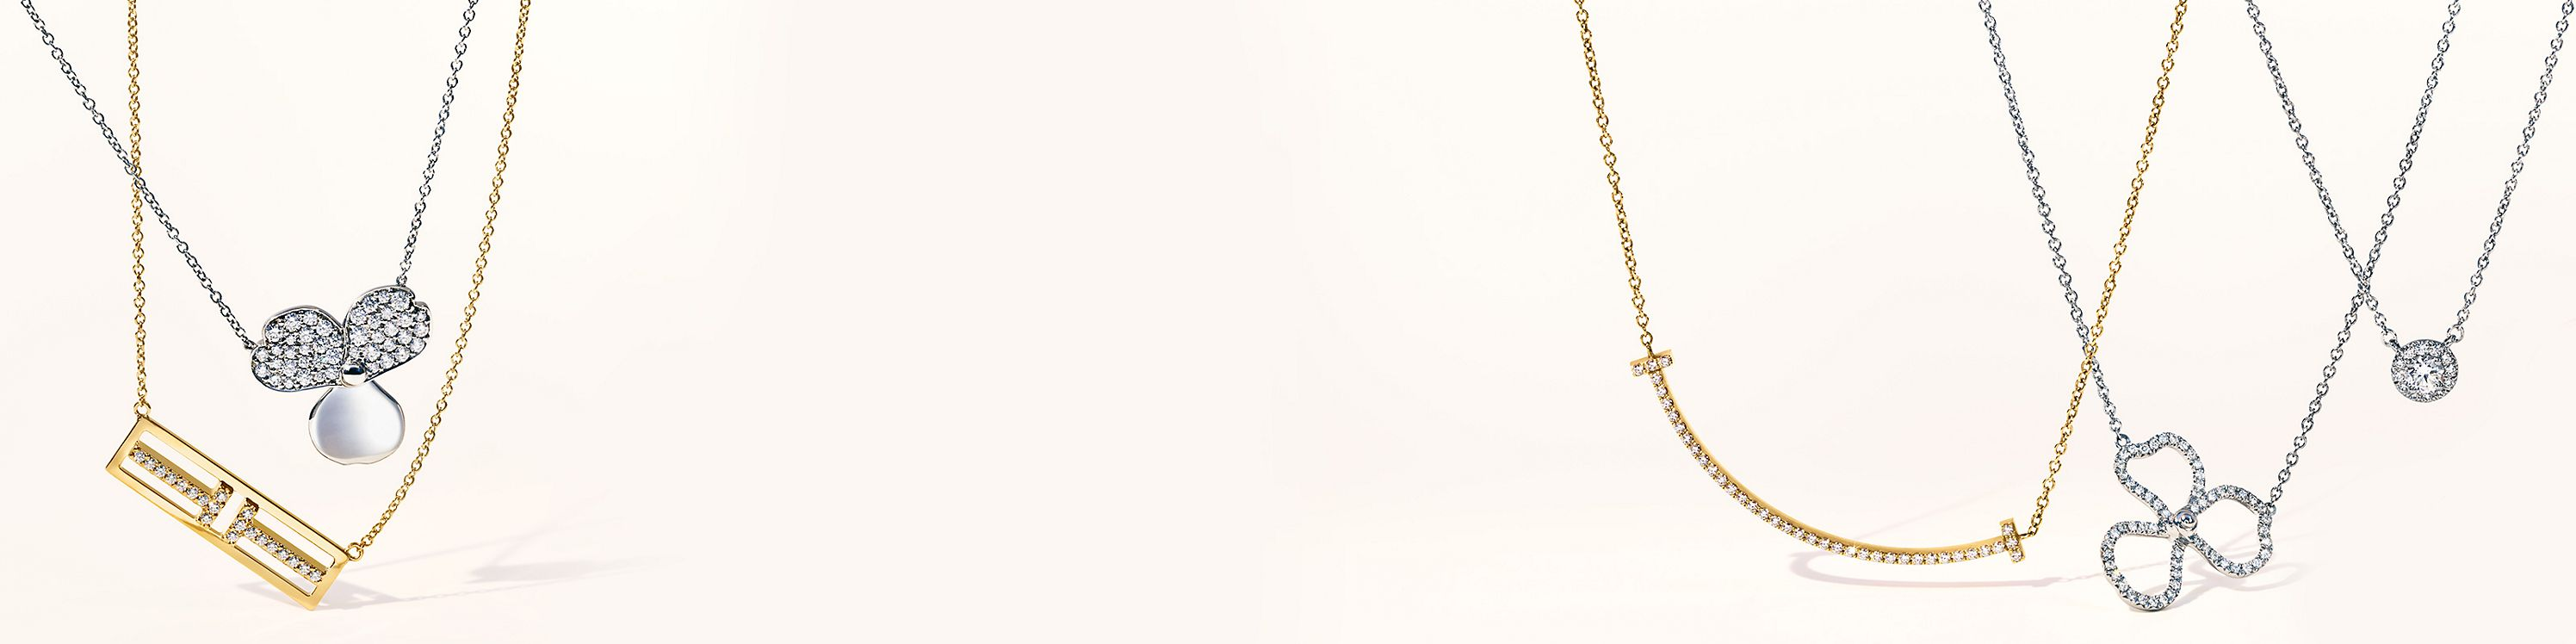 9e7ec6a1874c5 Necklaces & Pendants | Tiffany & Co.